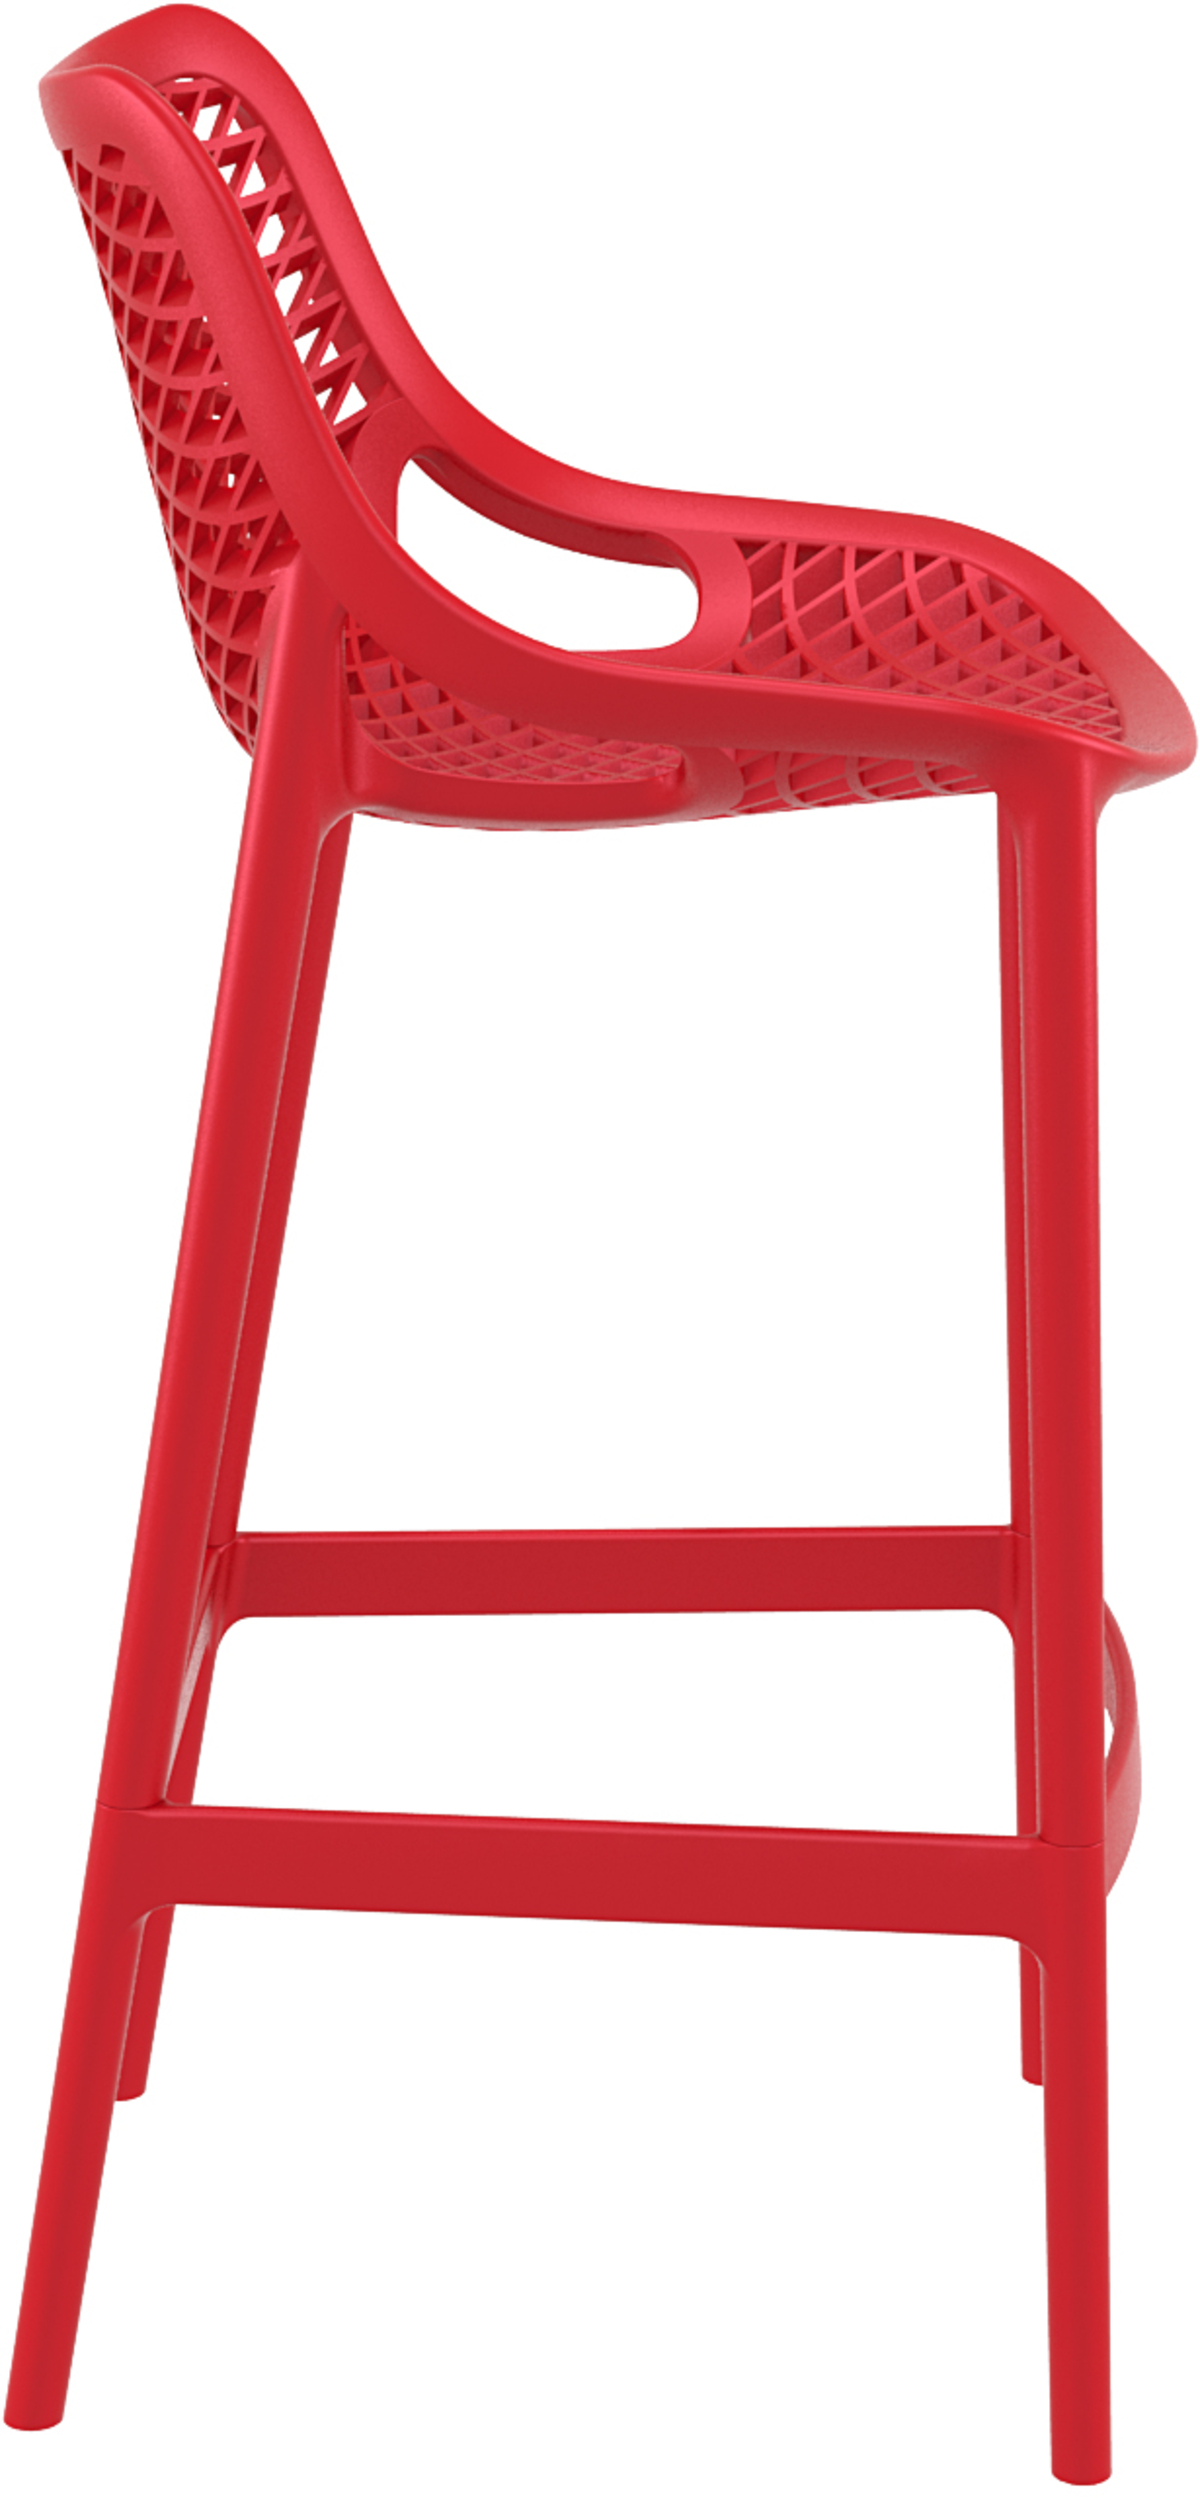 Tabouret bst rouge 45 cm Air